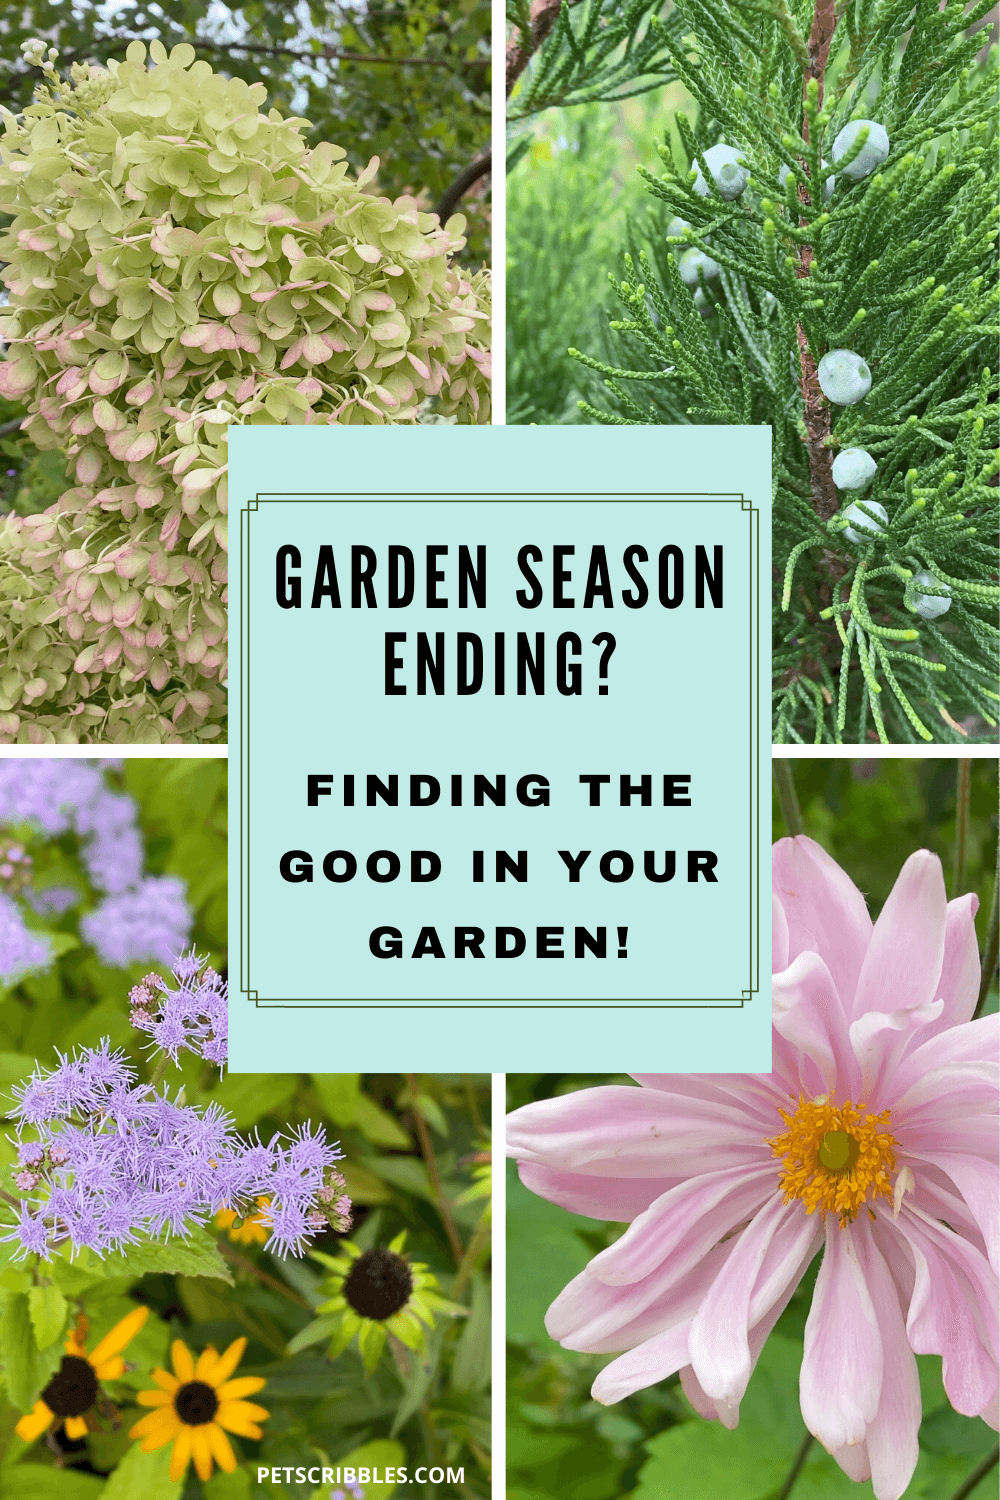 Today I'm sharing a photo and video collage of what's blooming in my zone 7, Southern New Jersey garden. I'm doing this to encourage you to do the same and find the good in your garden — after a season of heat, humidity, tropical storms, floods and whatever else Mother Nature has thrown at us this year!  via @petscribbles